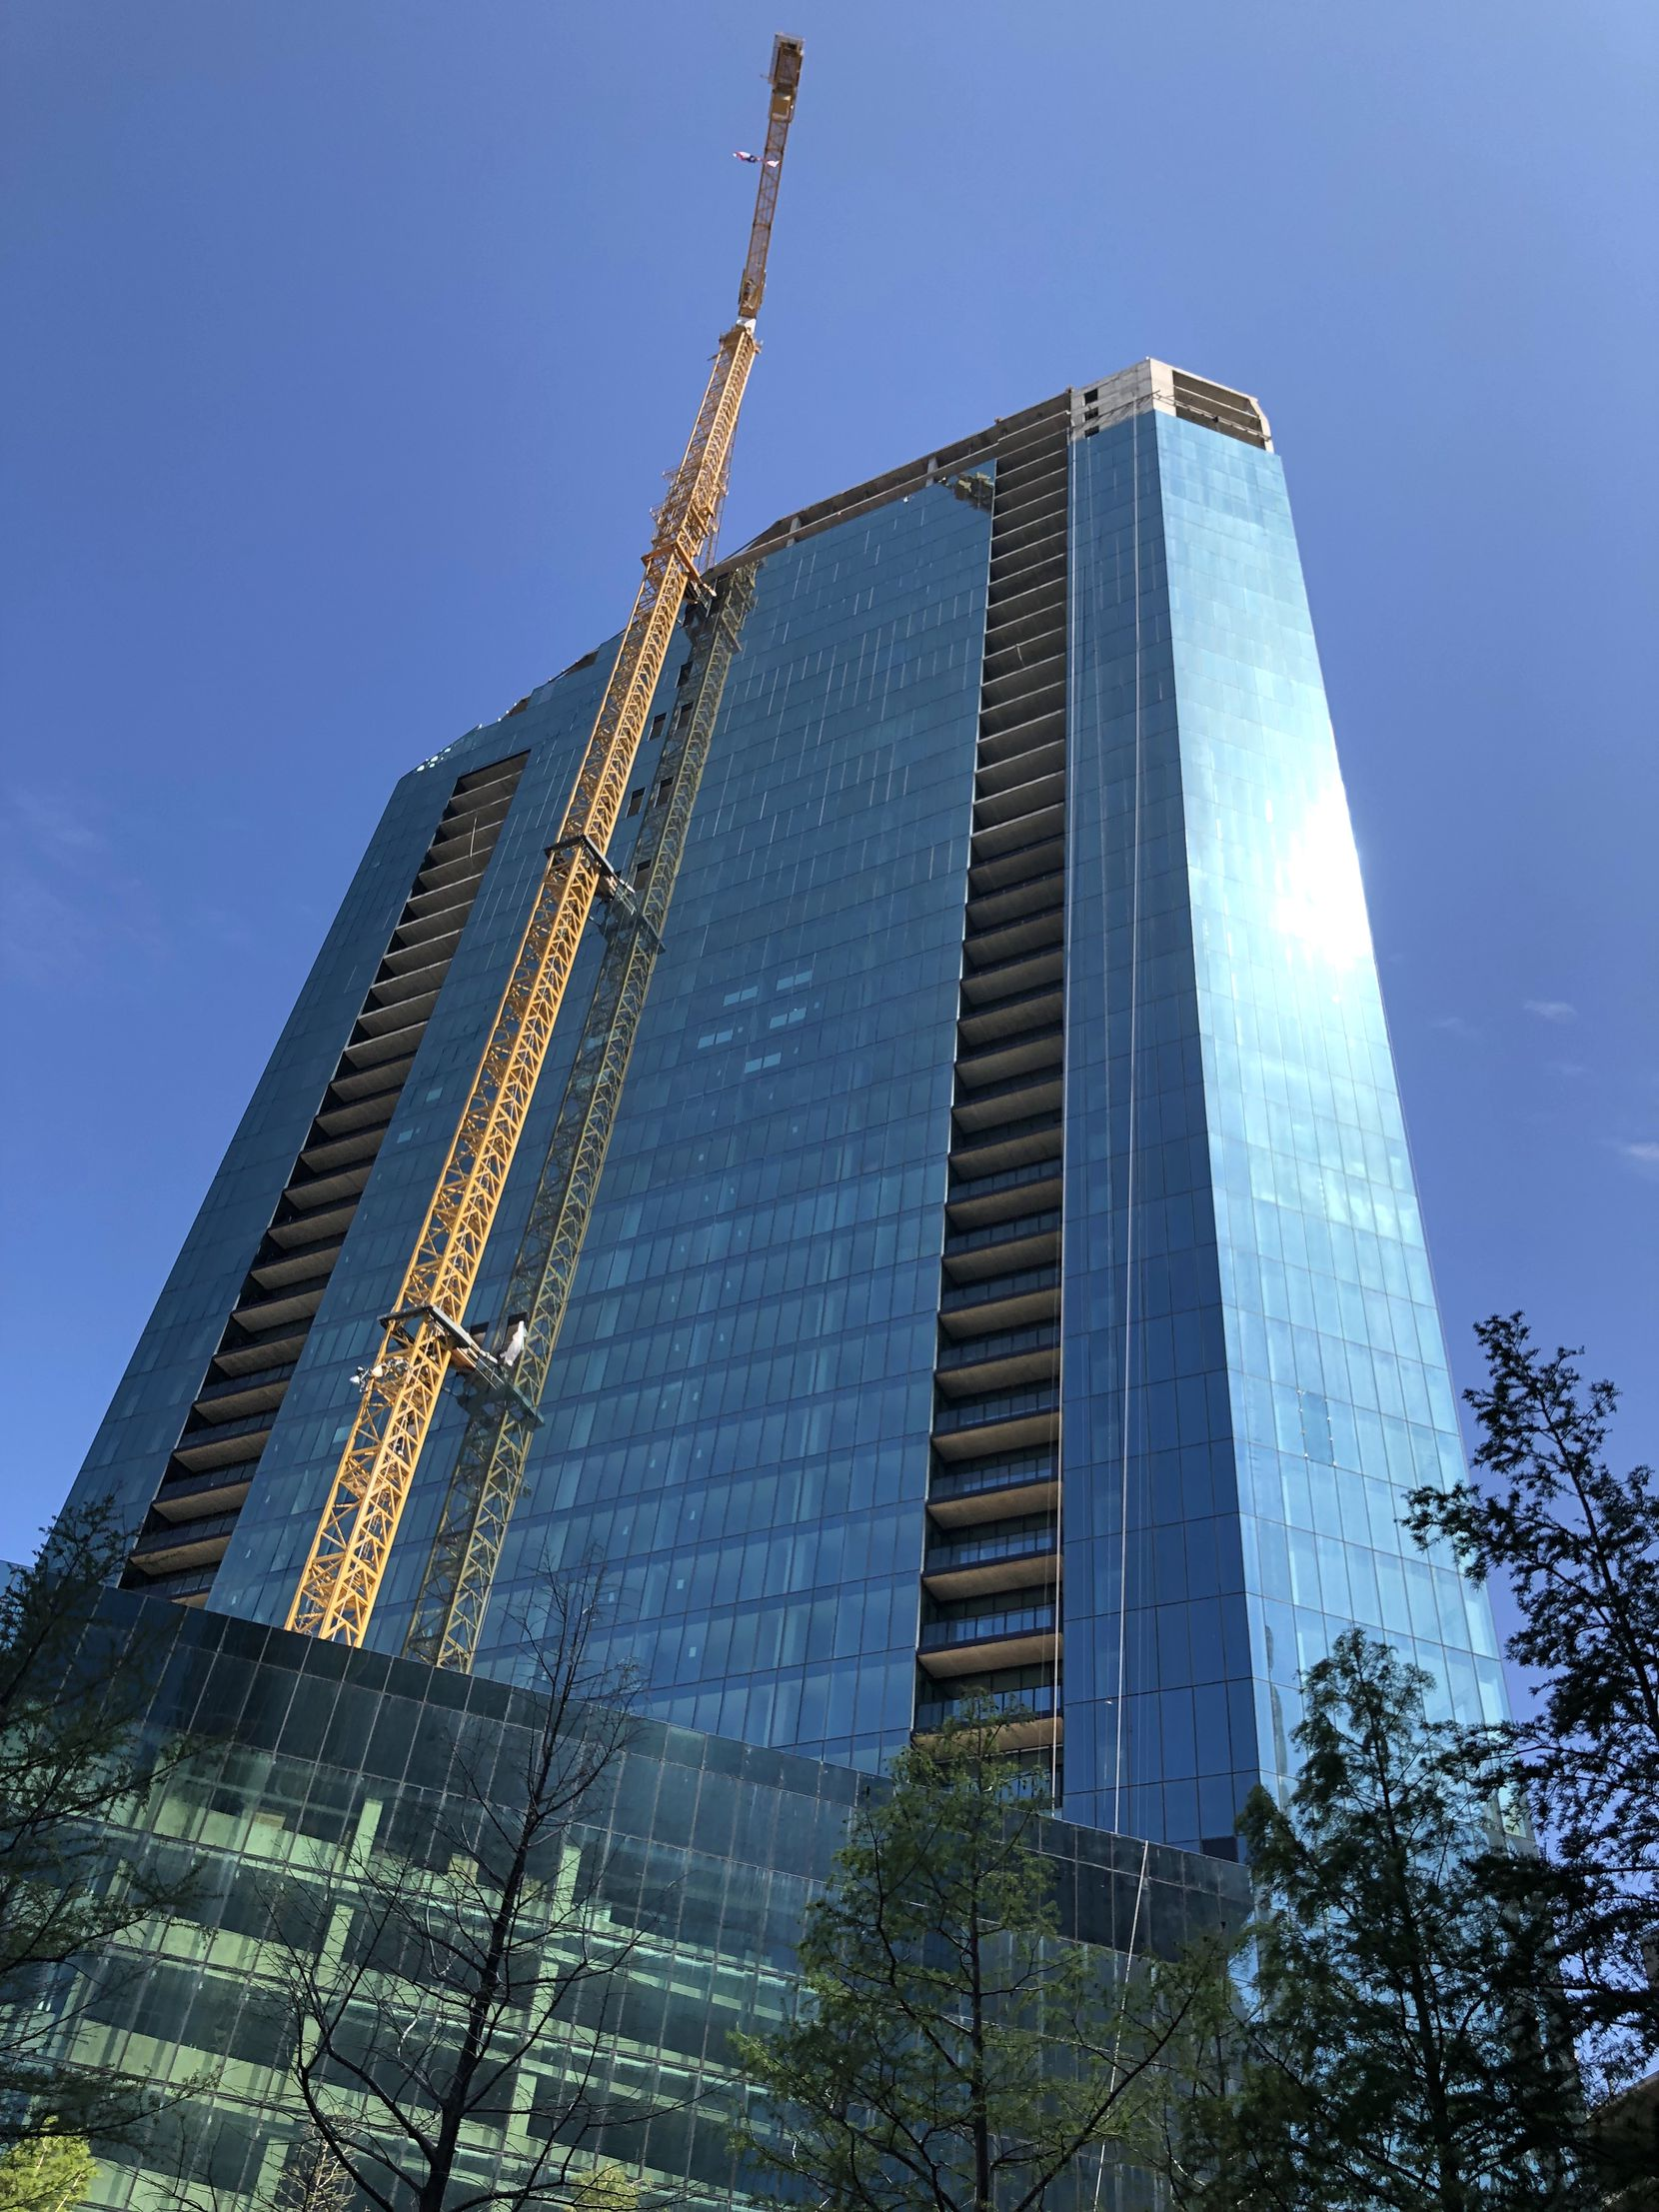 The first apartments in the tower will open in March.